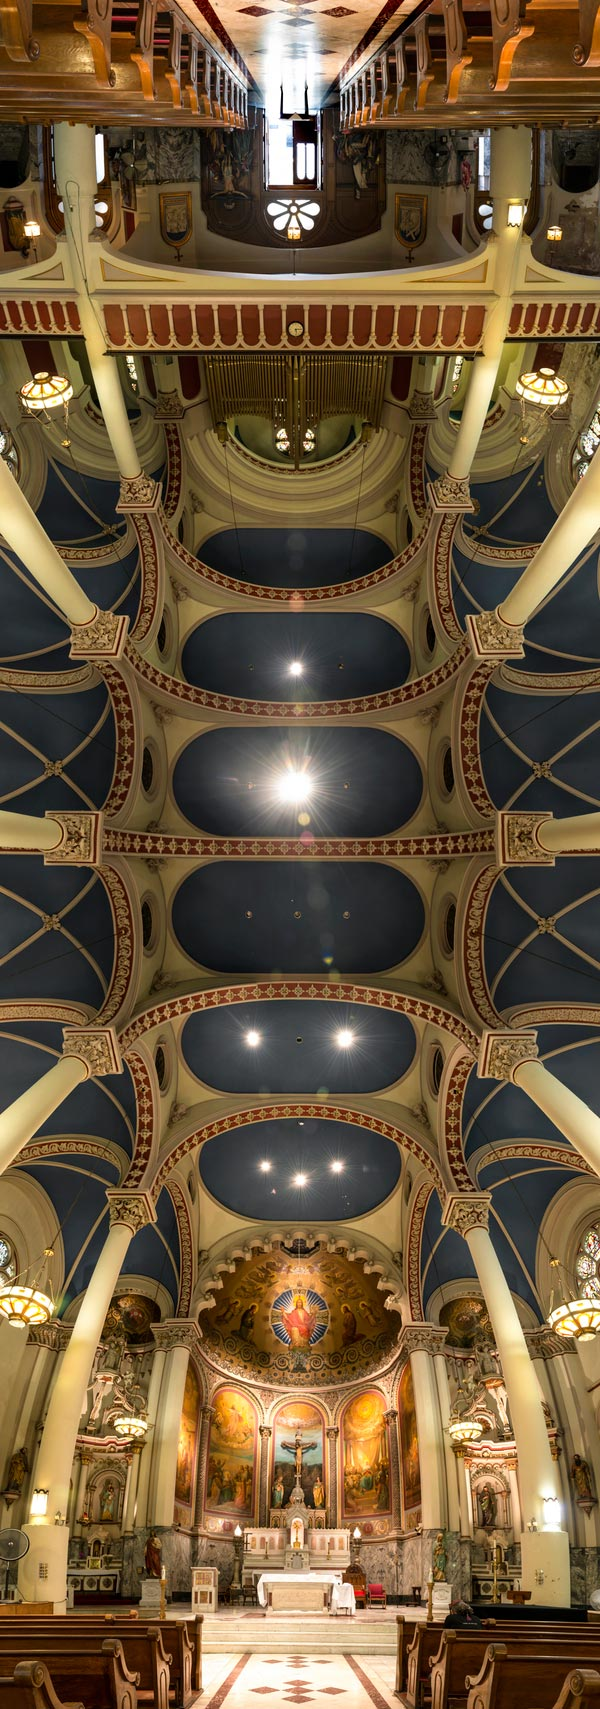 vertical panoramas of church ceilings 5 Amazing Vertical Panoramas of Church Ceilings